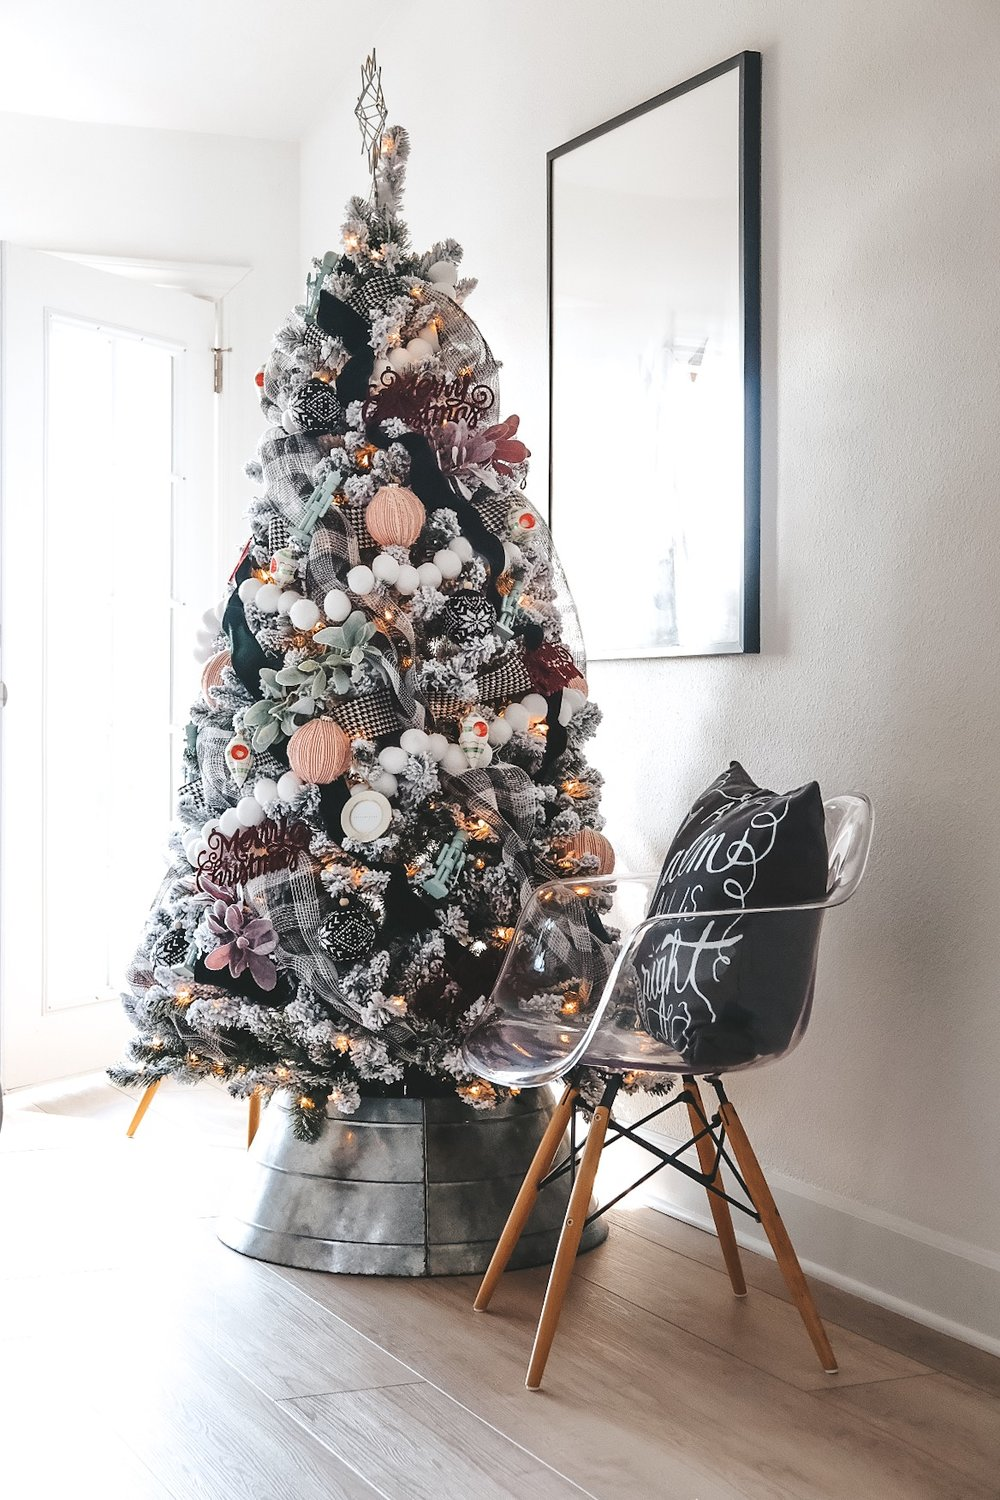 How To Make Your Christmas Tree Full On A Budget Me And Mr Jones